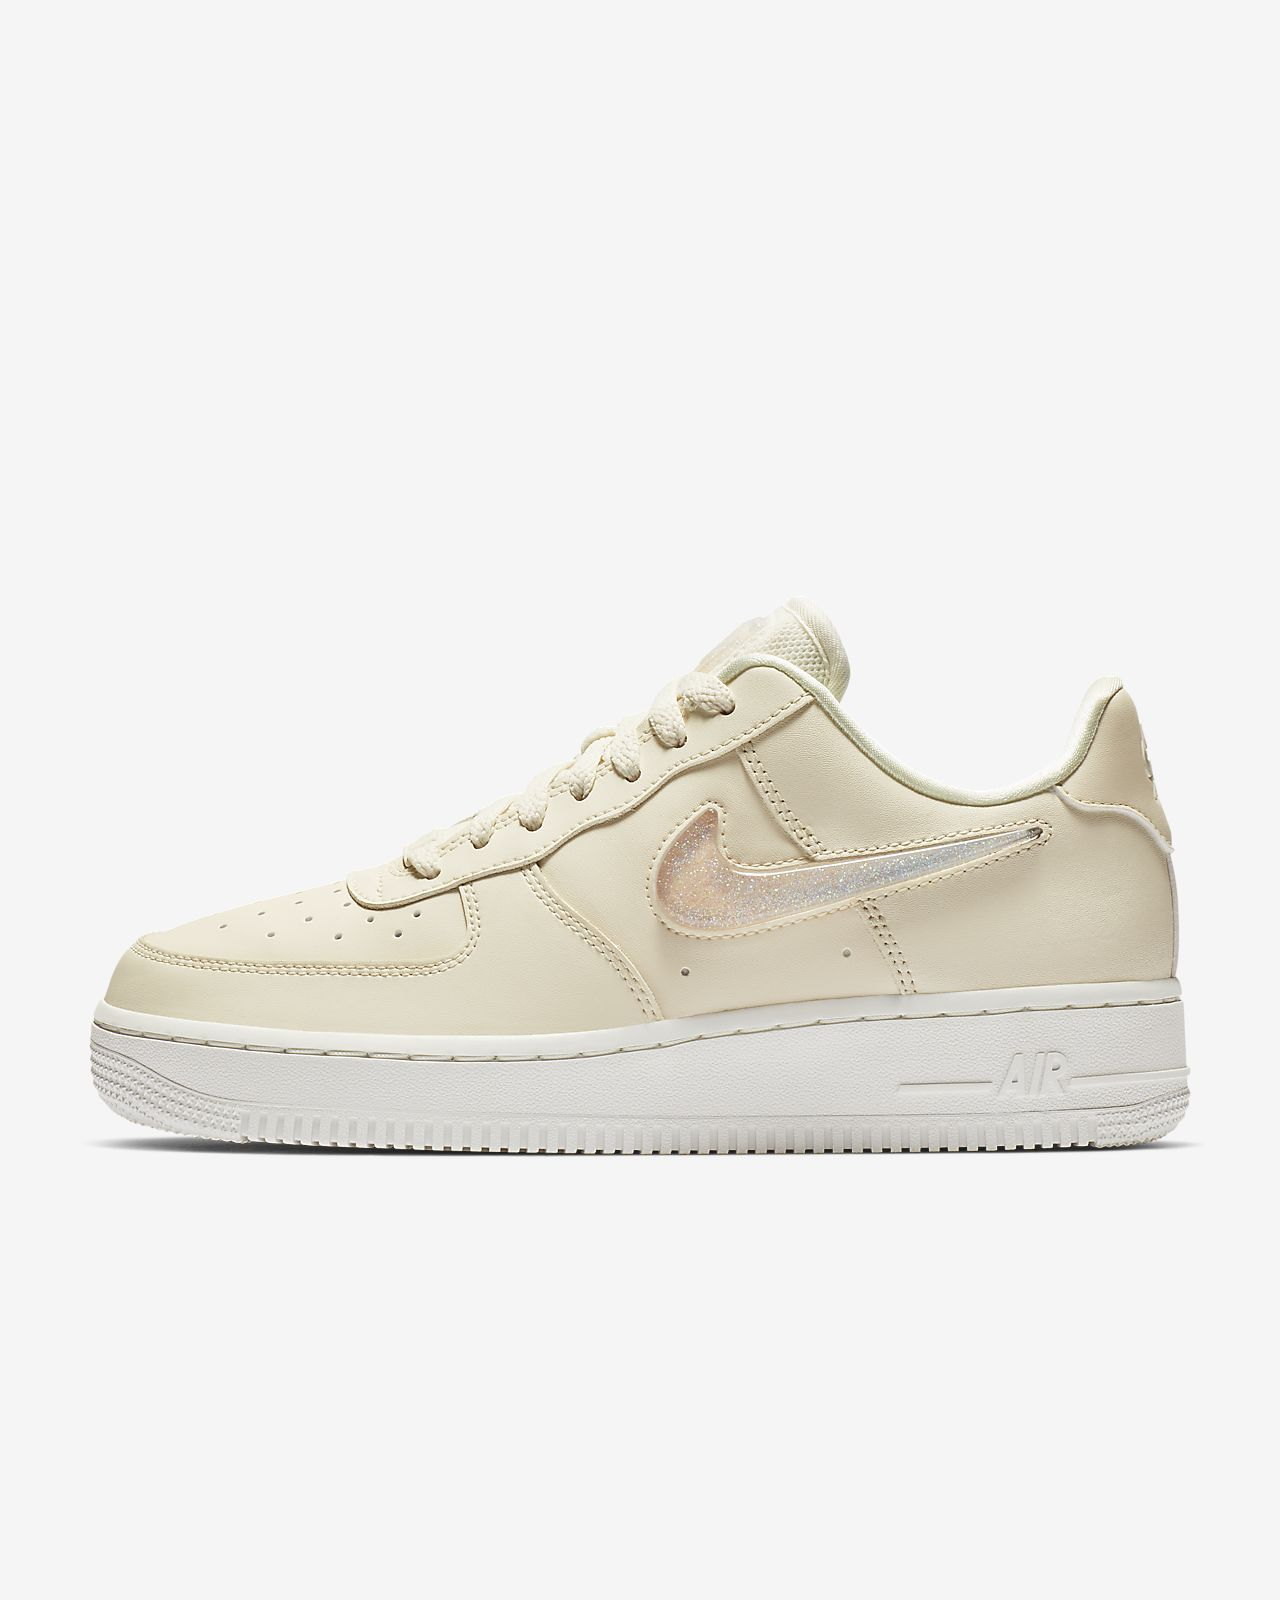 9e4a20e0b02 Nike Air Force 1  07 SE Premium Women s Shoe. Nike.com GB